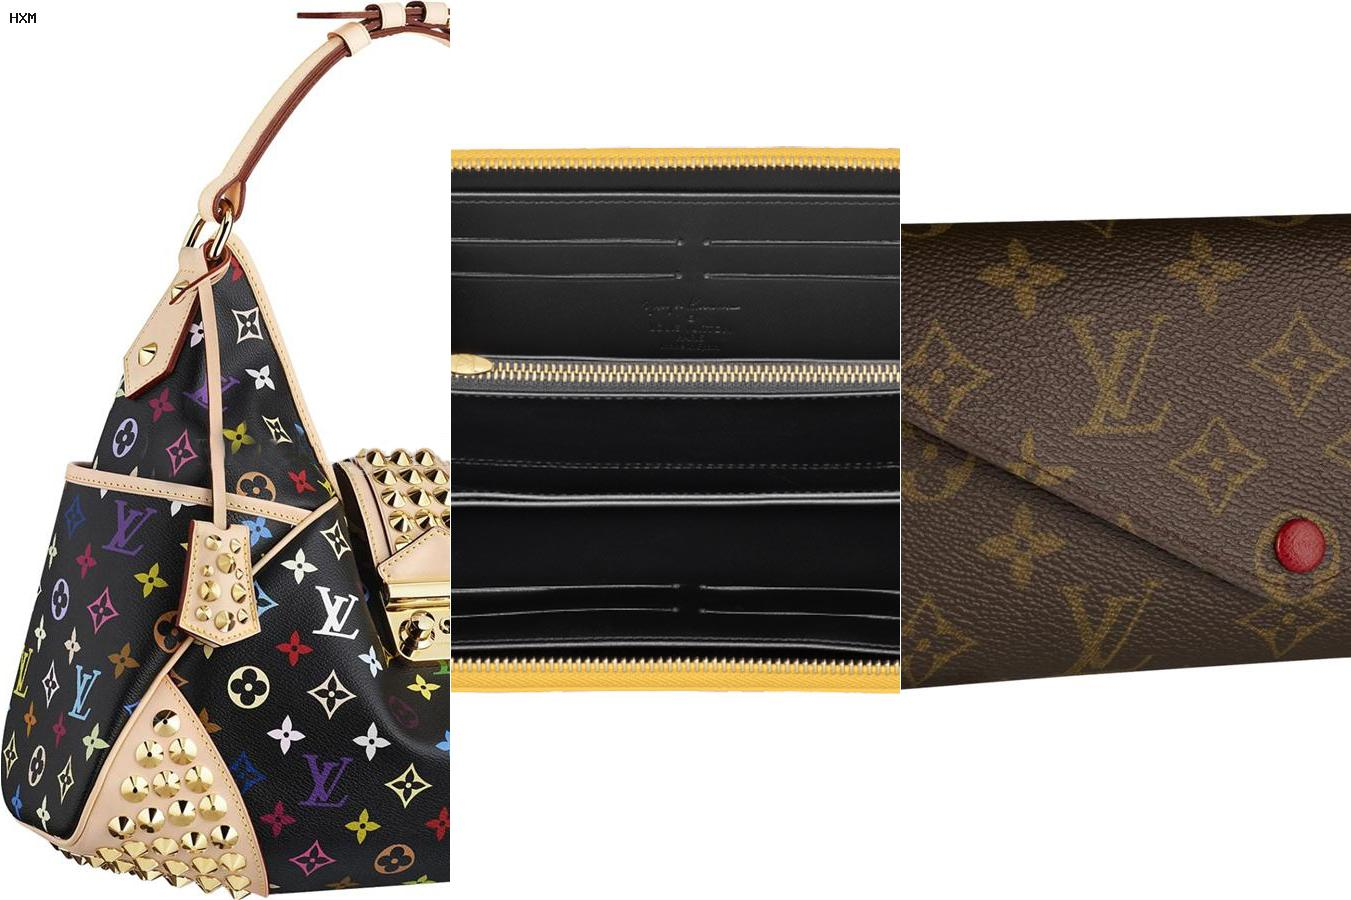 site de bolsas da louis vuitton